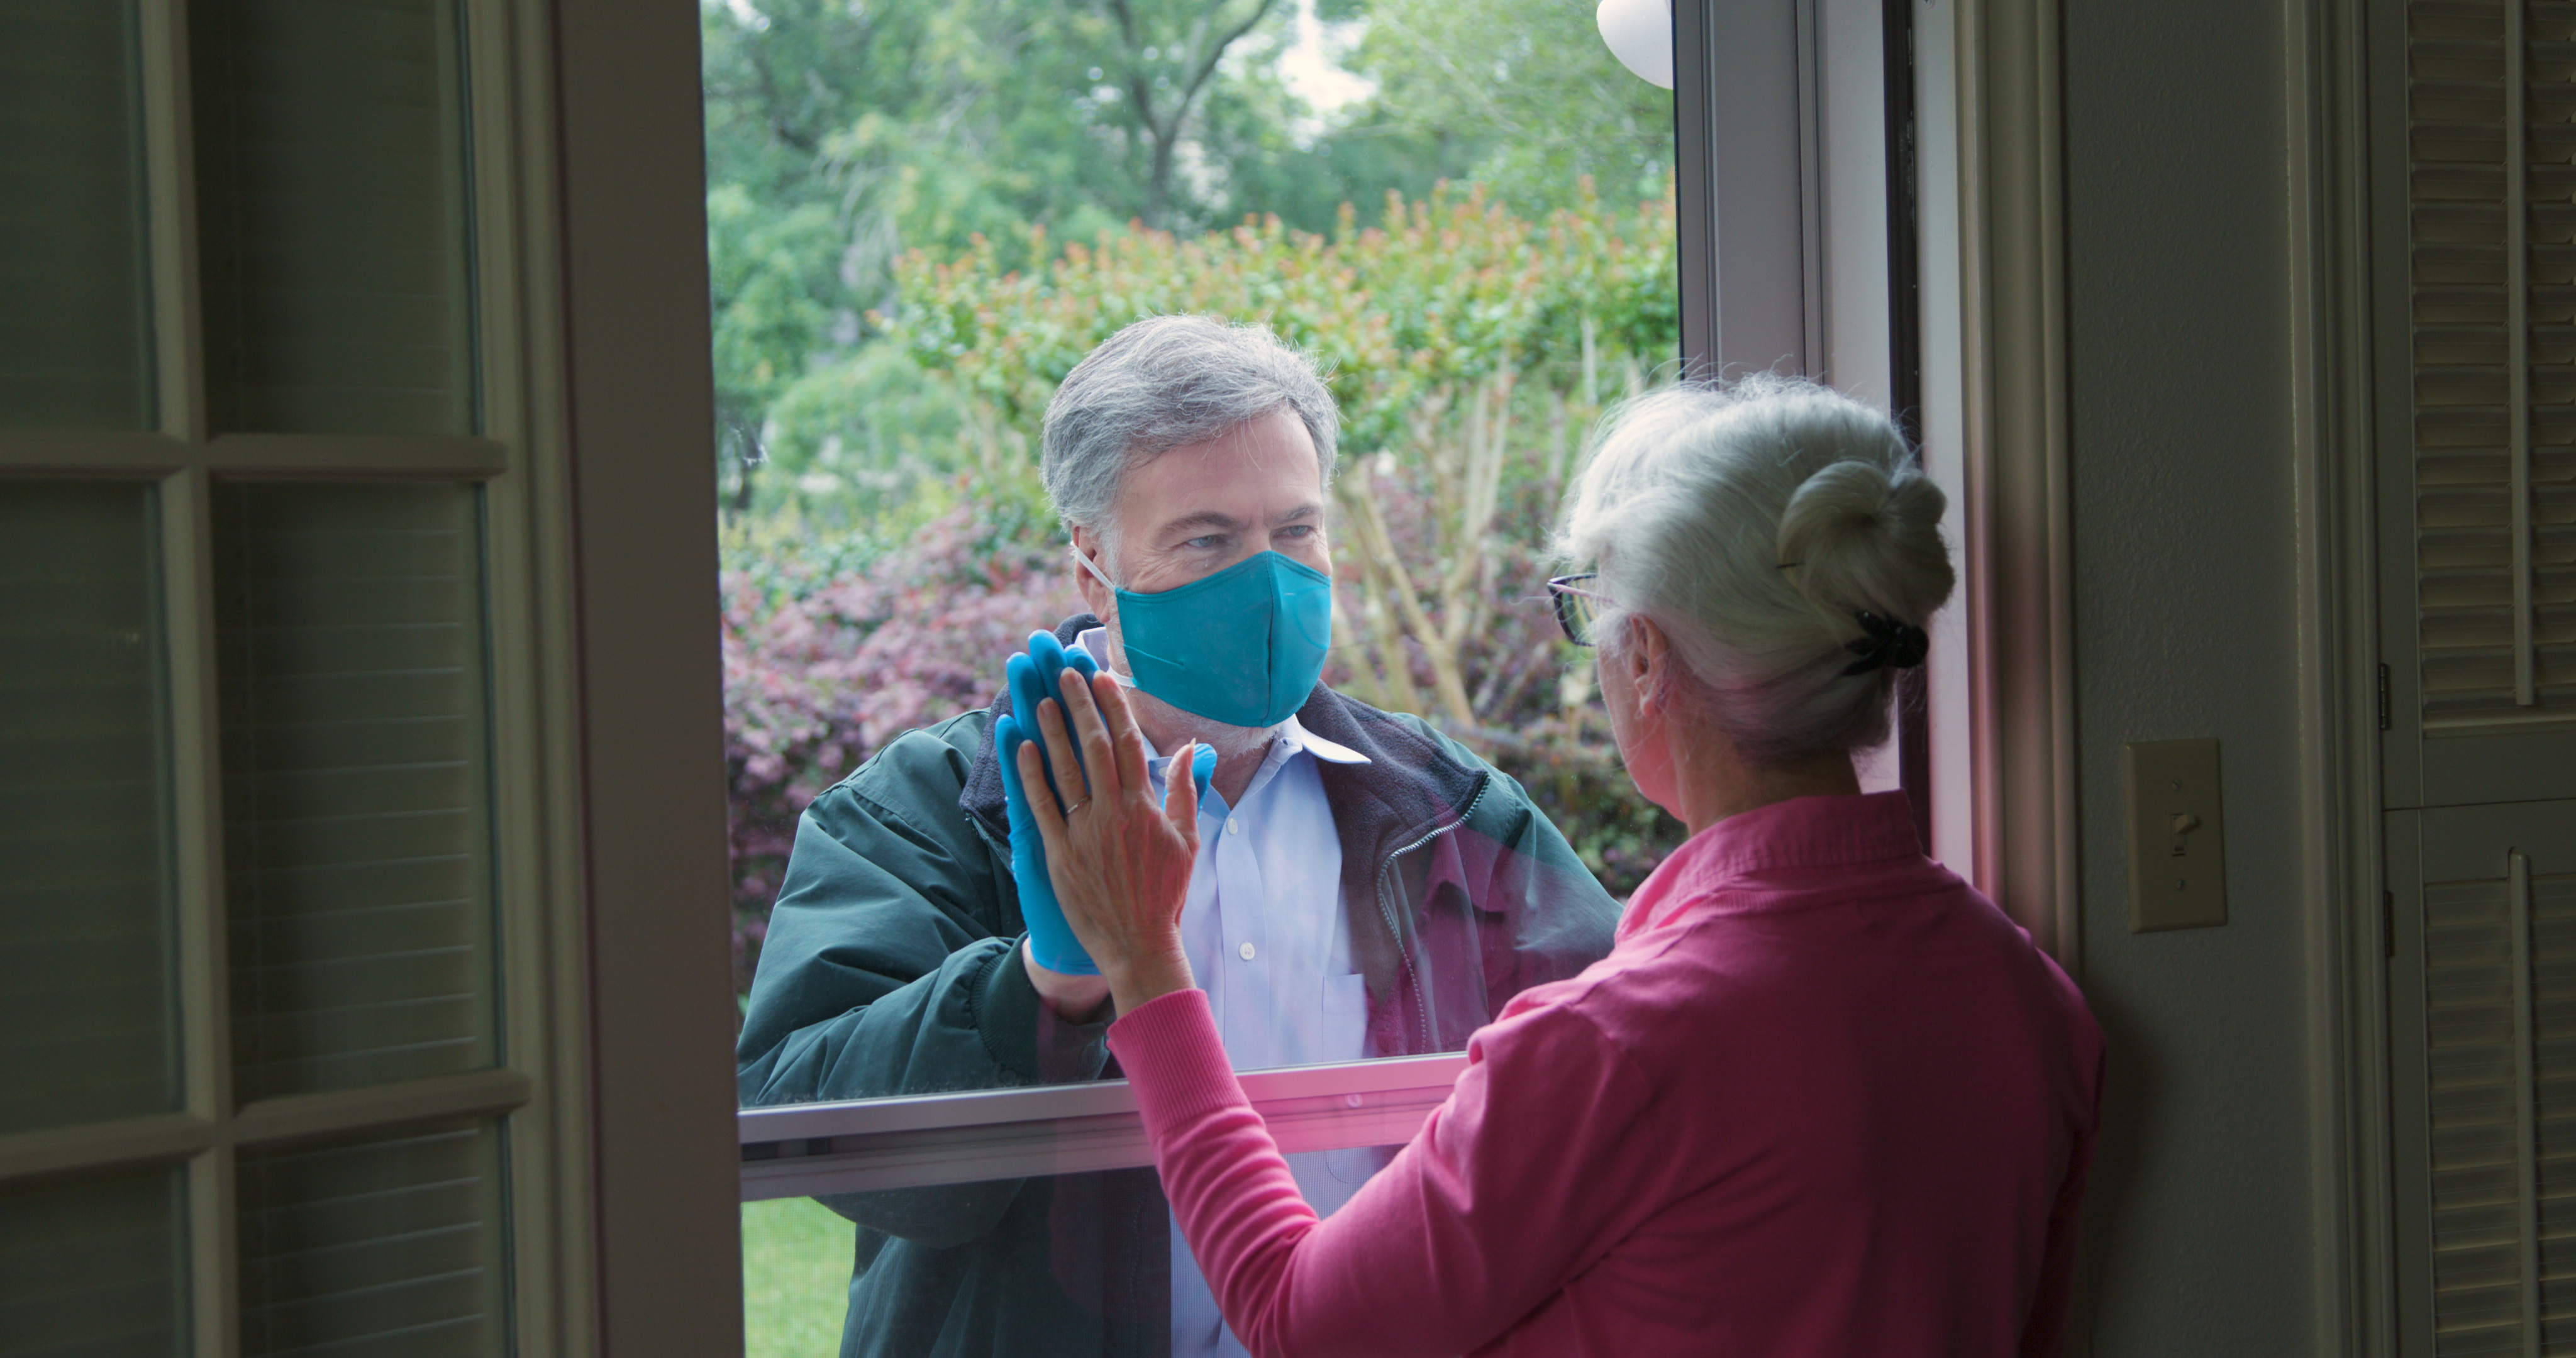 man checks on older neighbour during COVID-19 pandemic